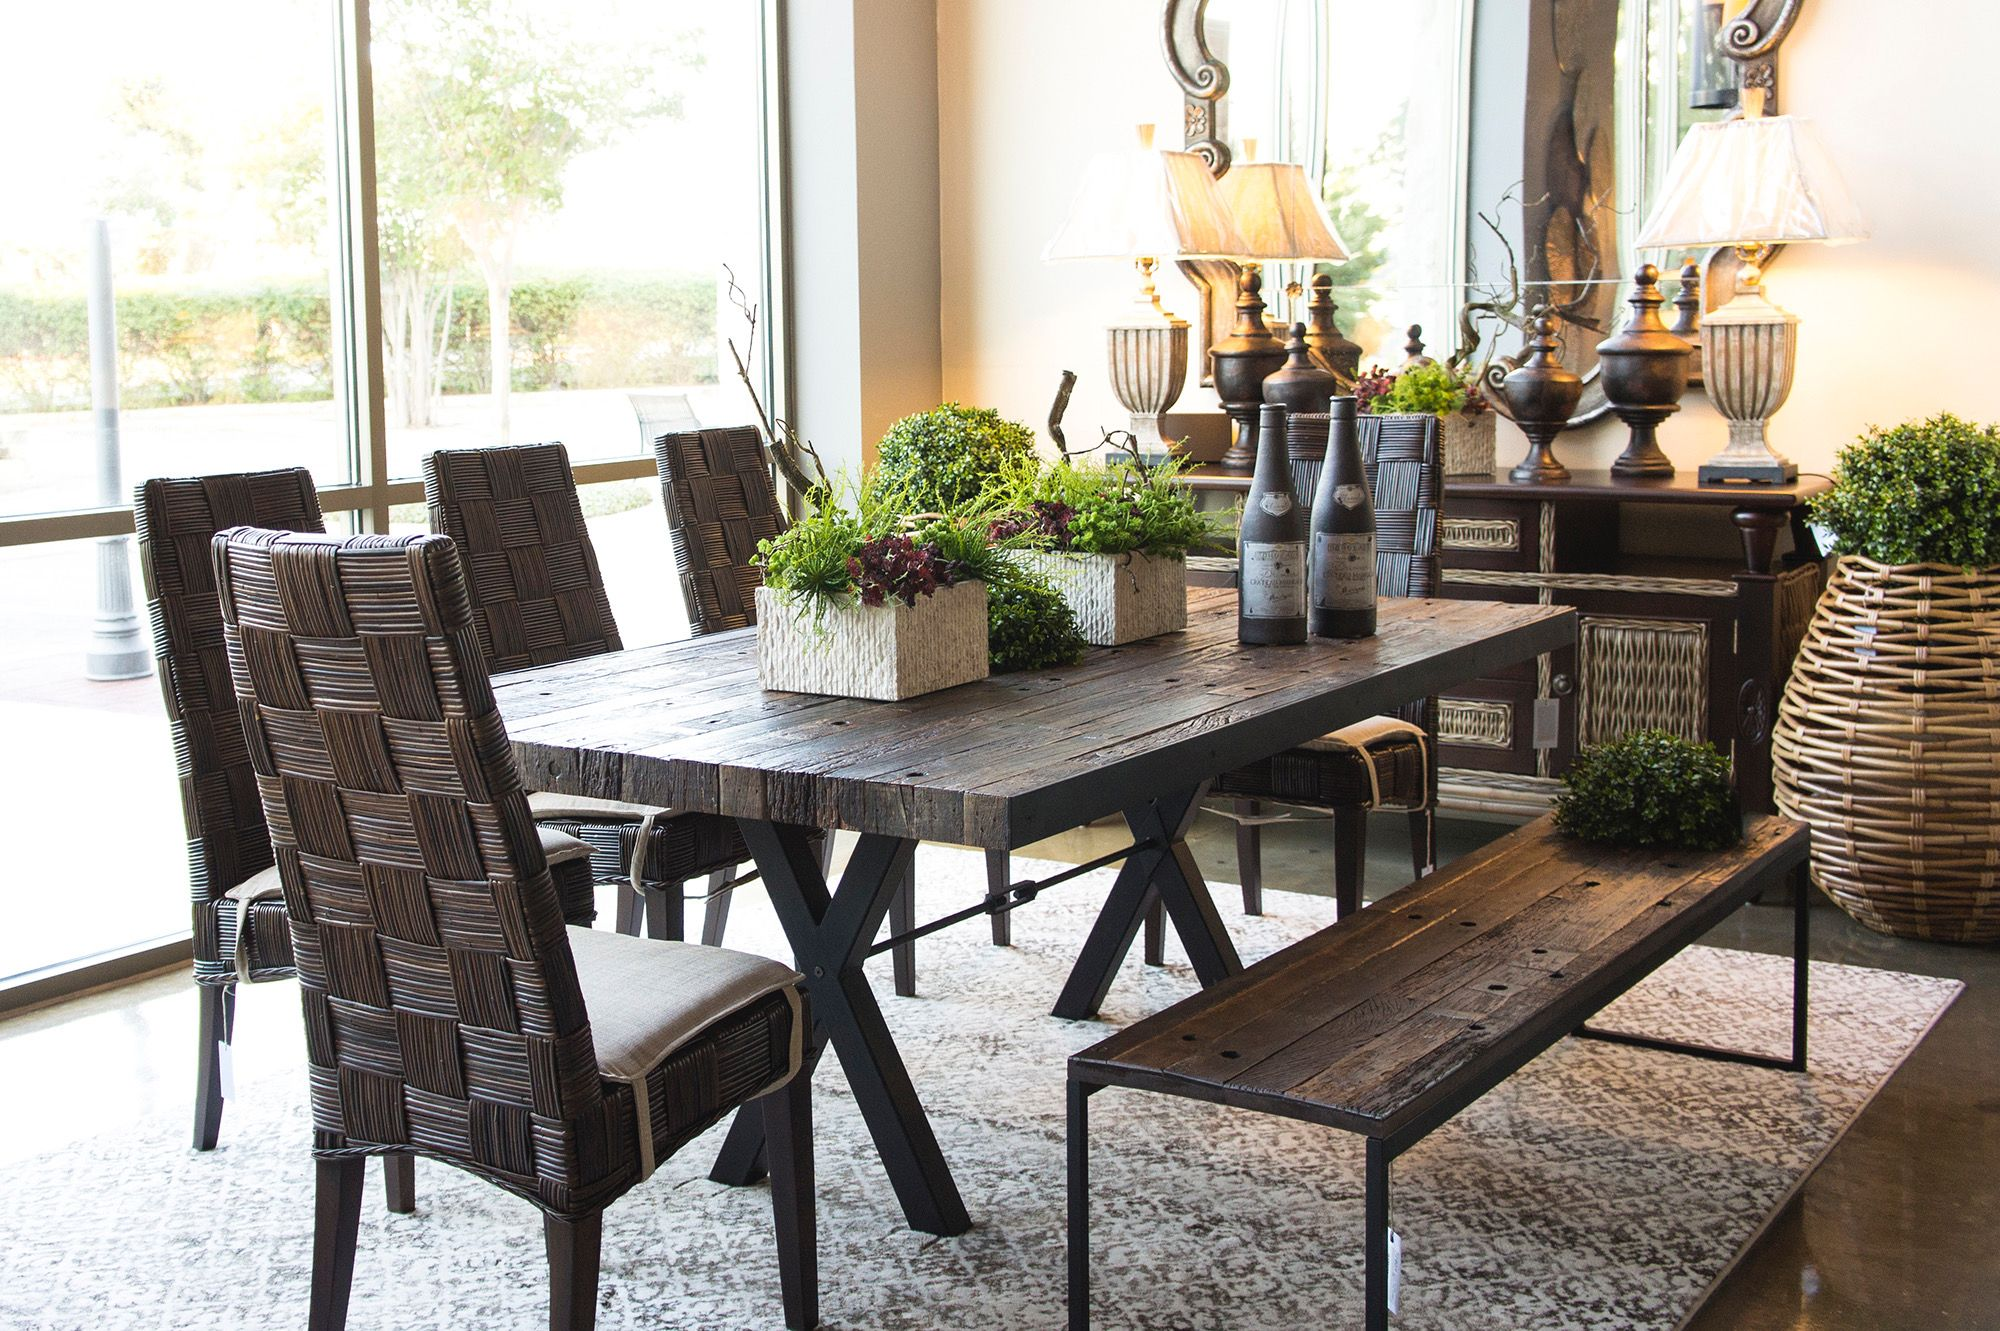 High Voltage Dining Table Made With Reclaimed Wood And Metal Base